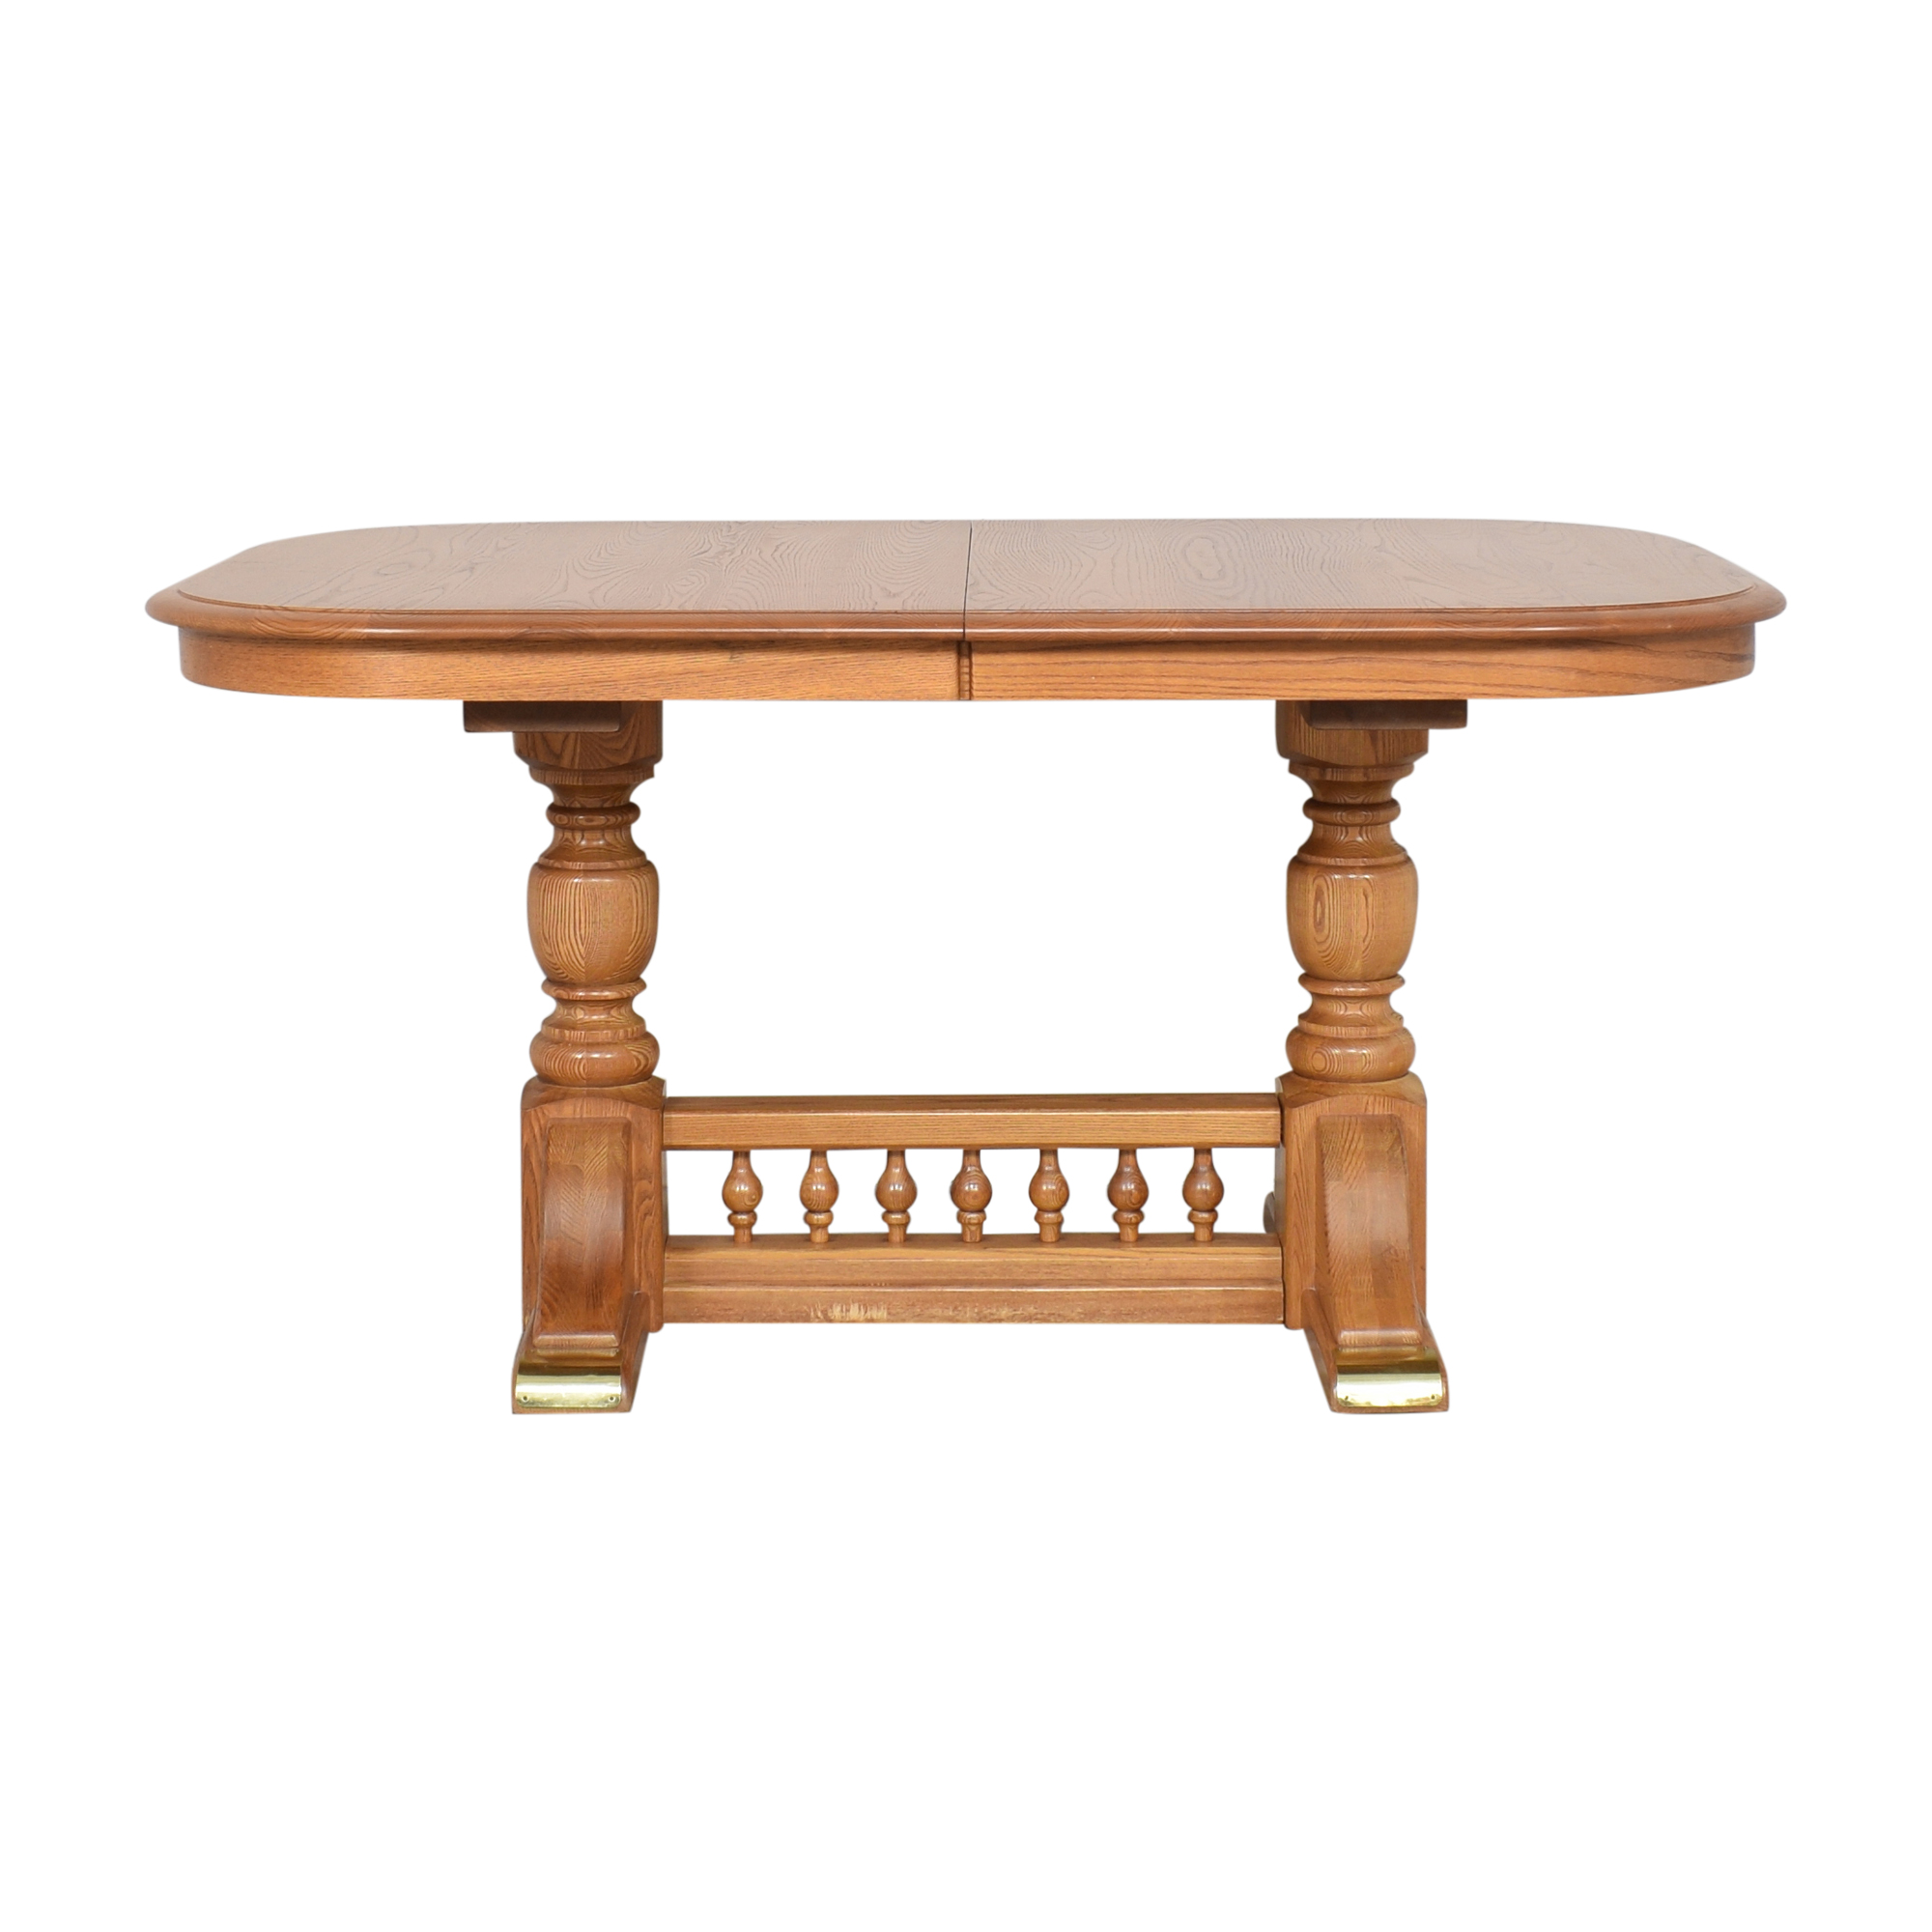 S. Bent & Bros S. Bent & Bros Extendable Dining Table discount